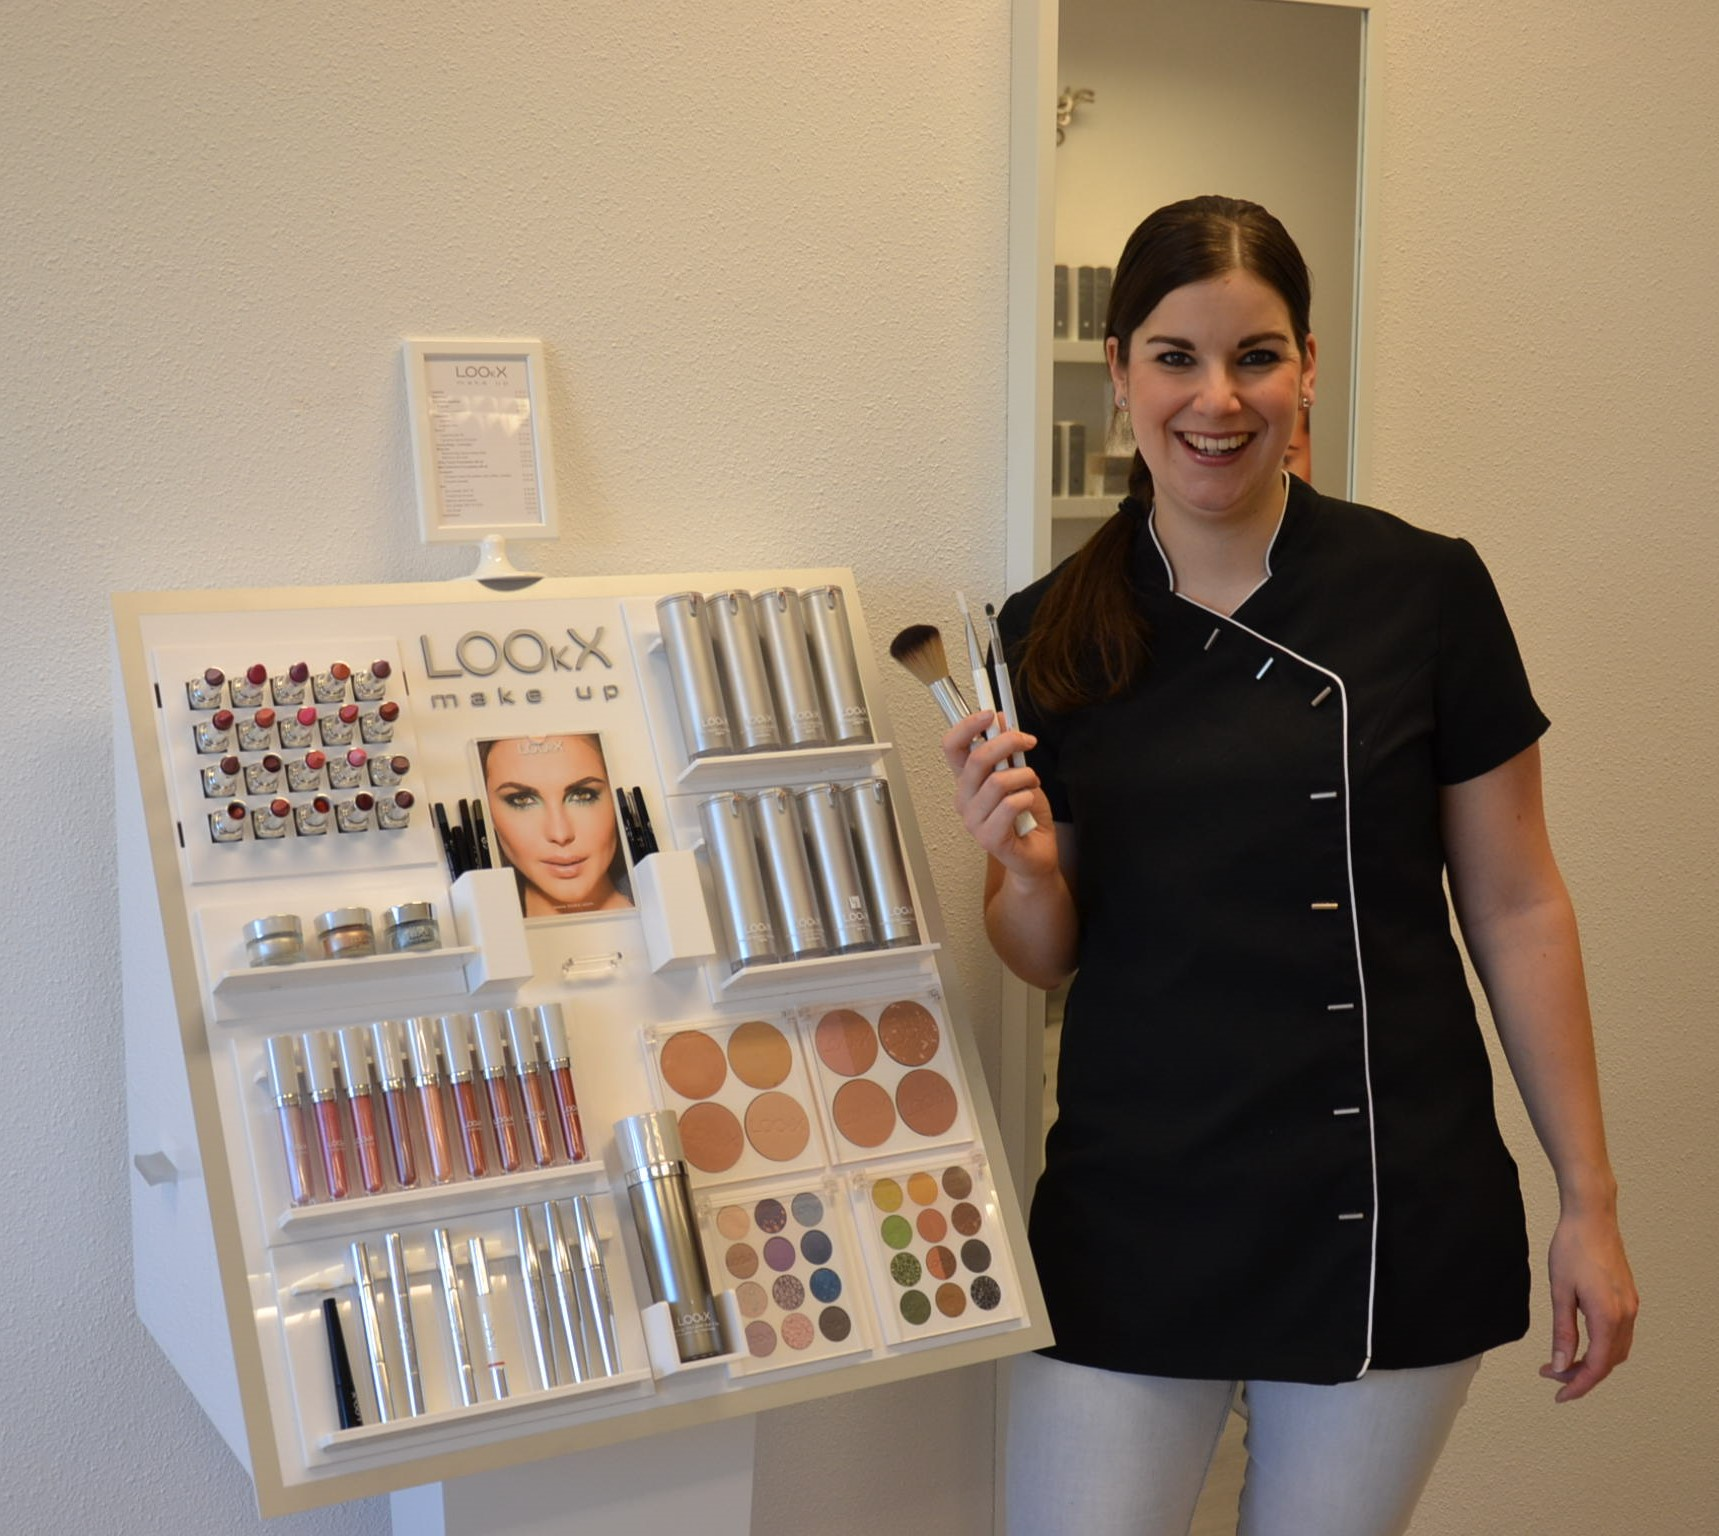 Make up LOOKX - Stadshagen